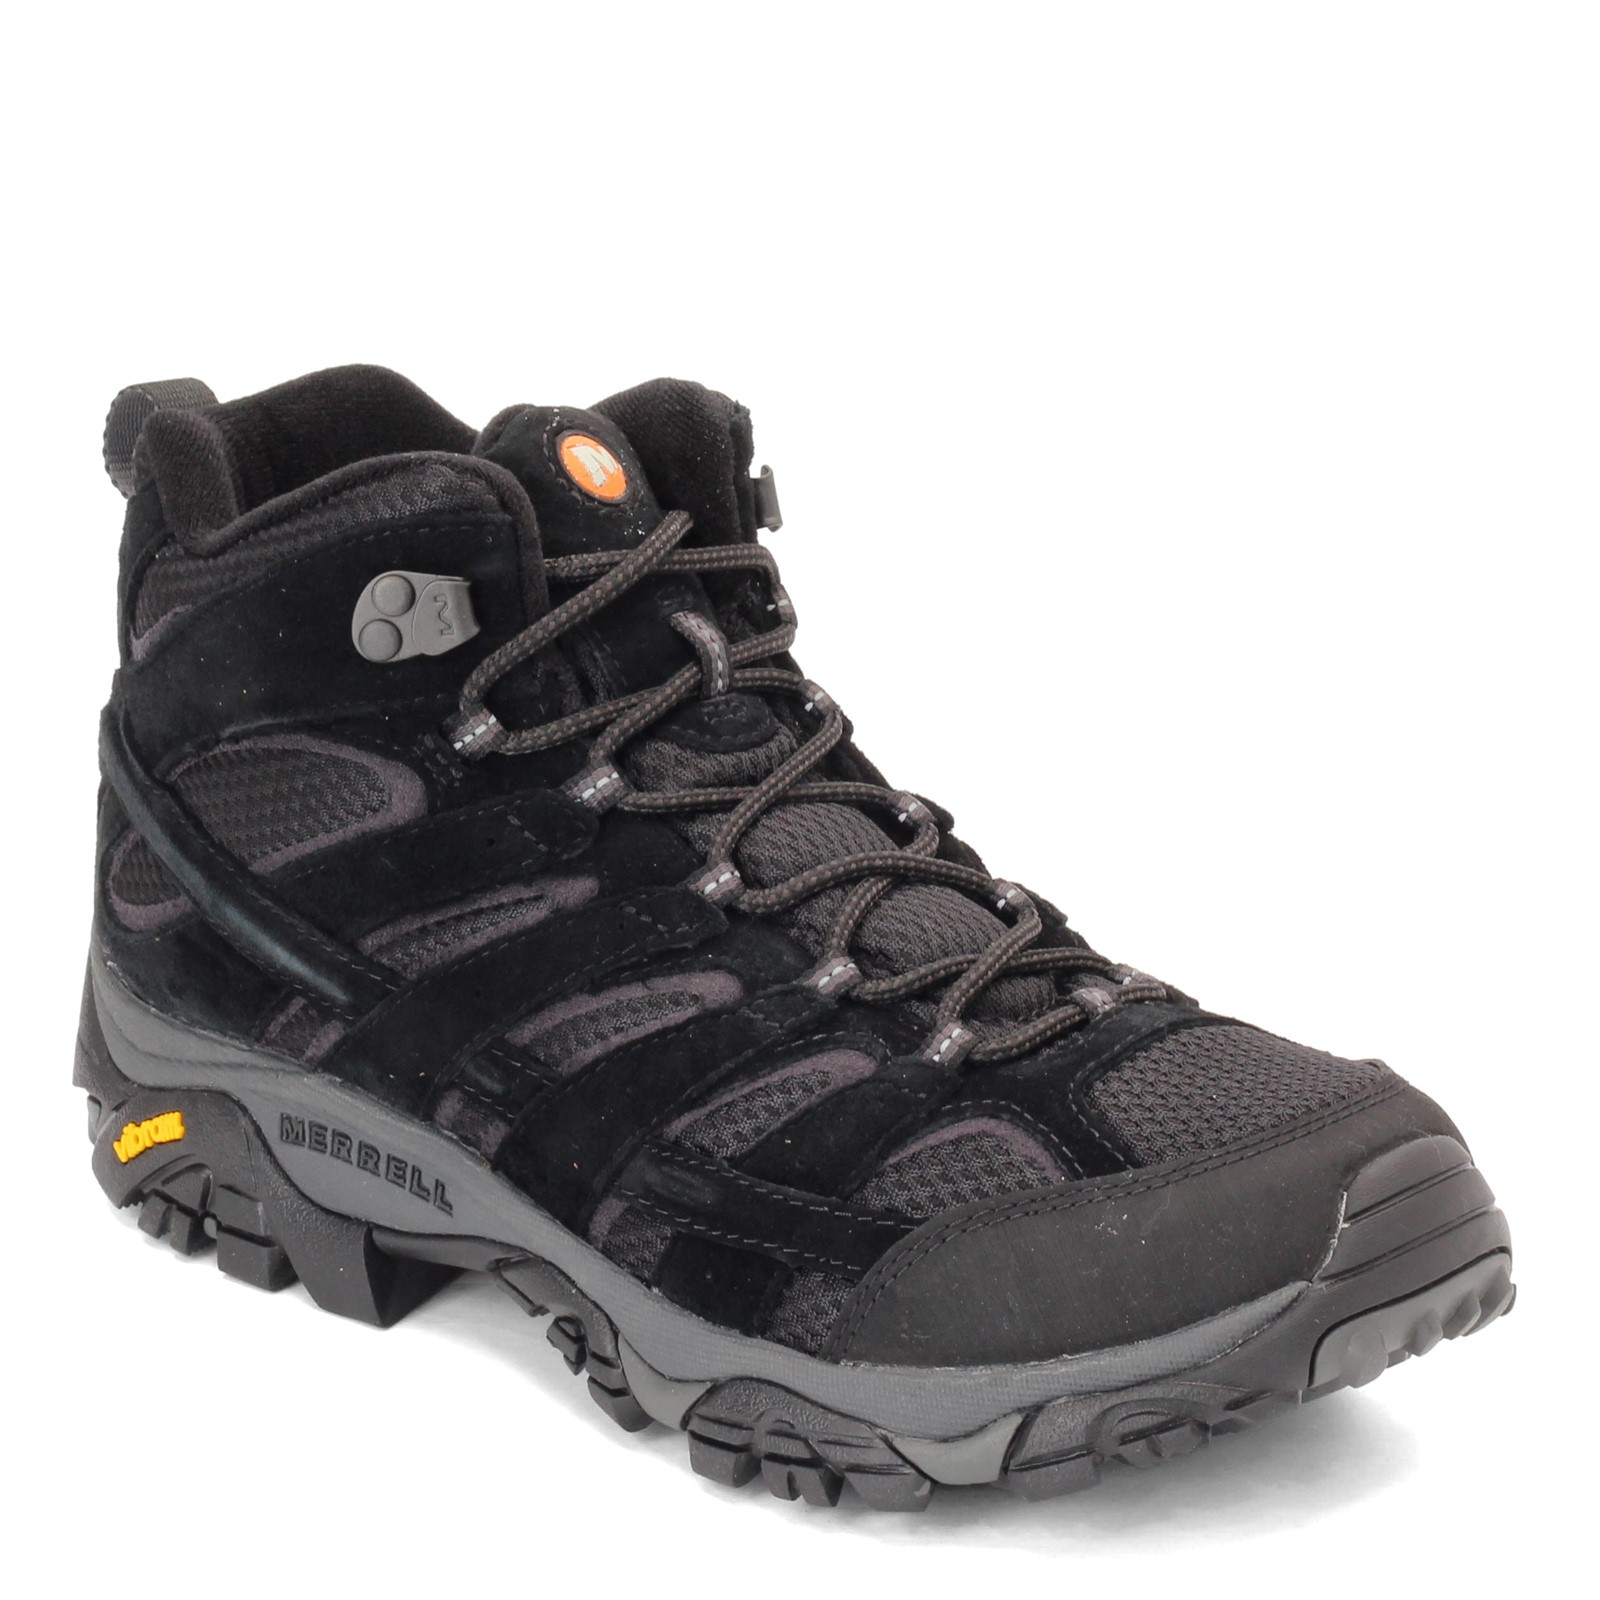 Men's Merrell, Moab 2 Vent Hiking Shoes - Wide Width